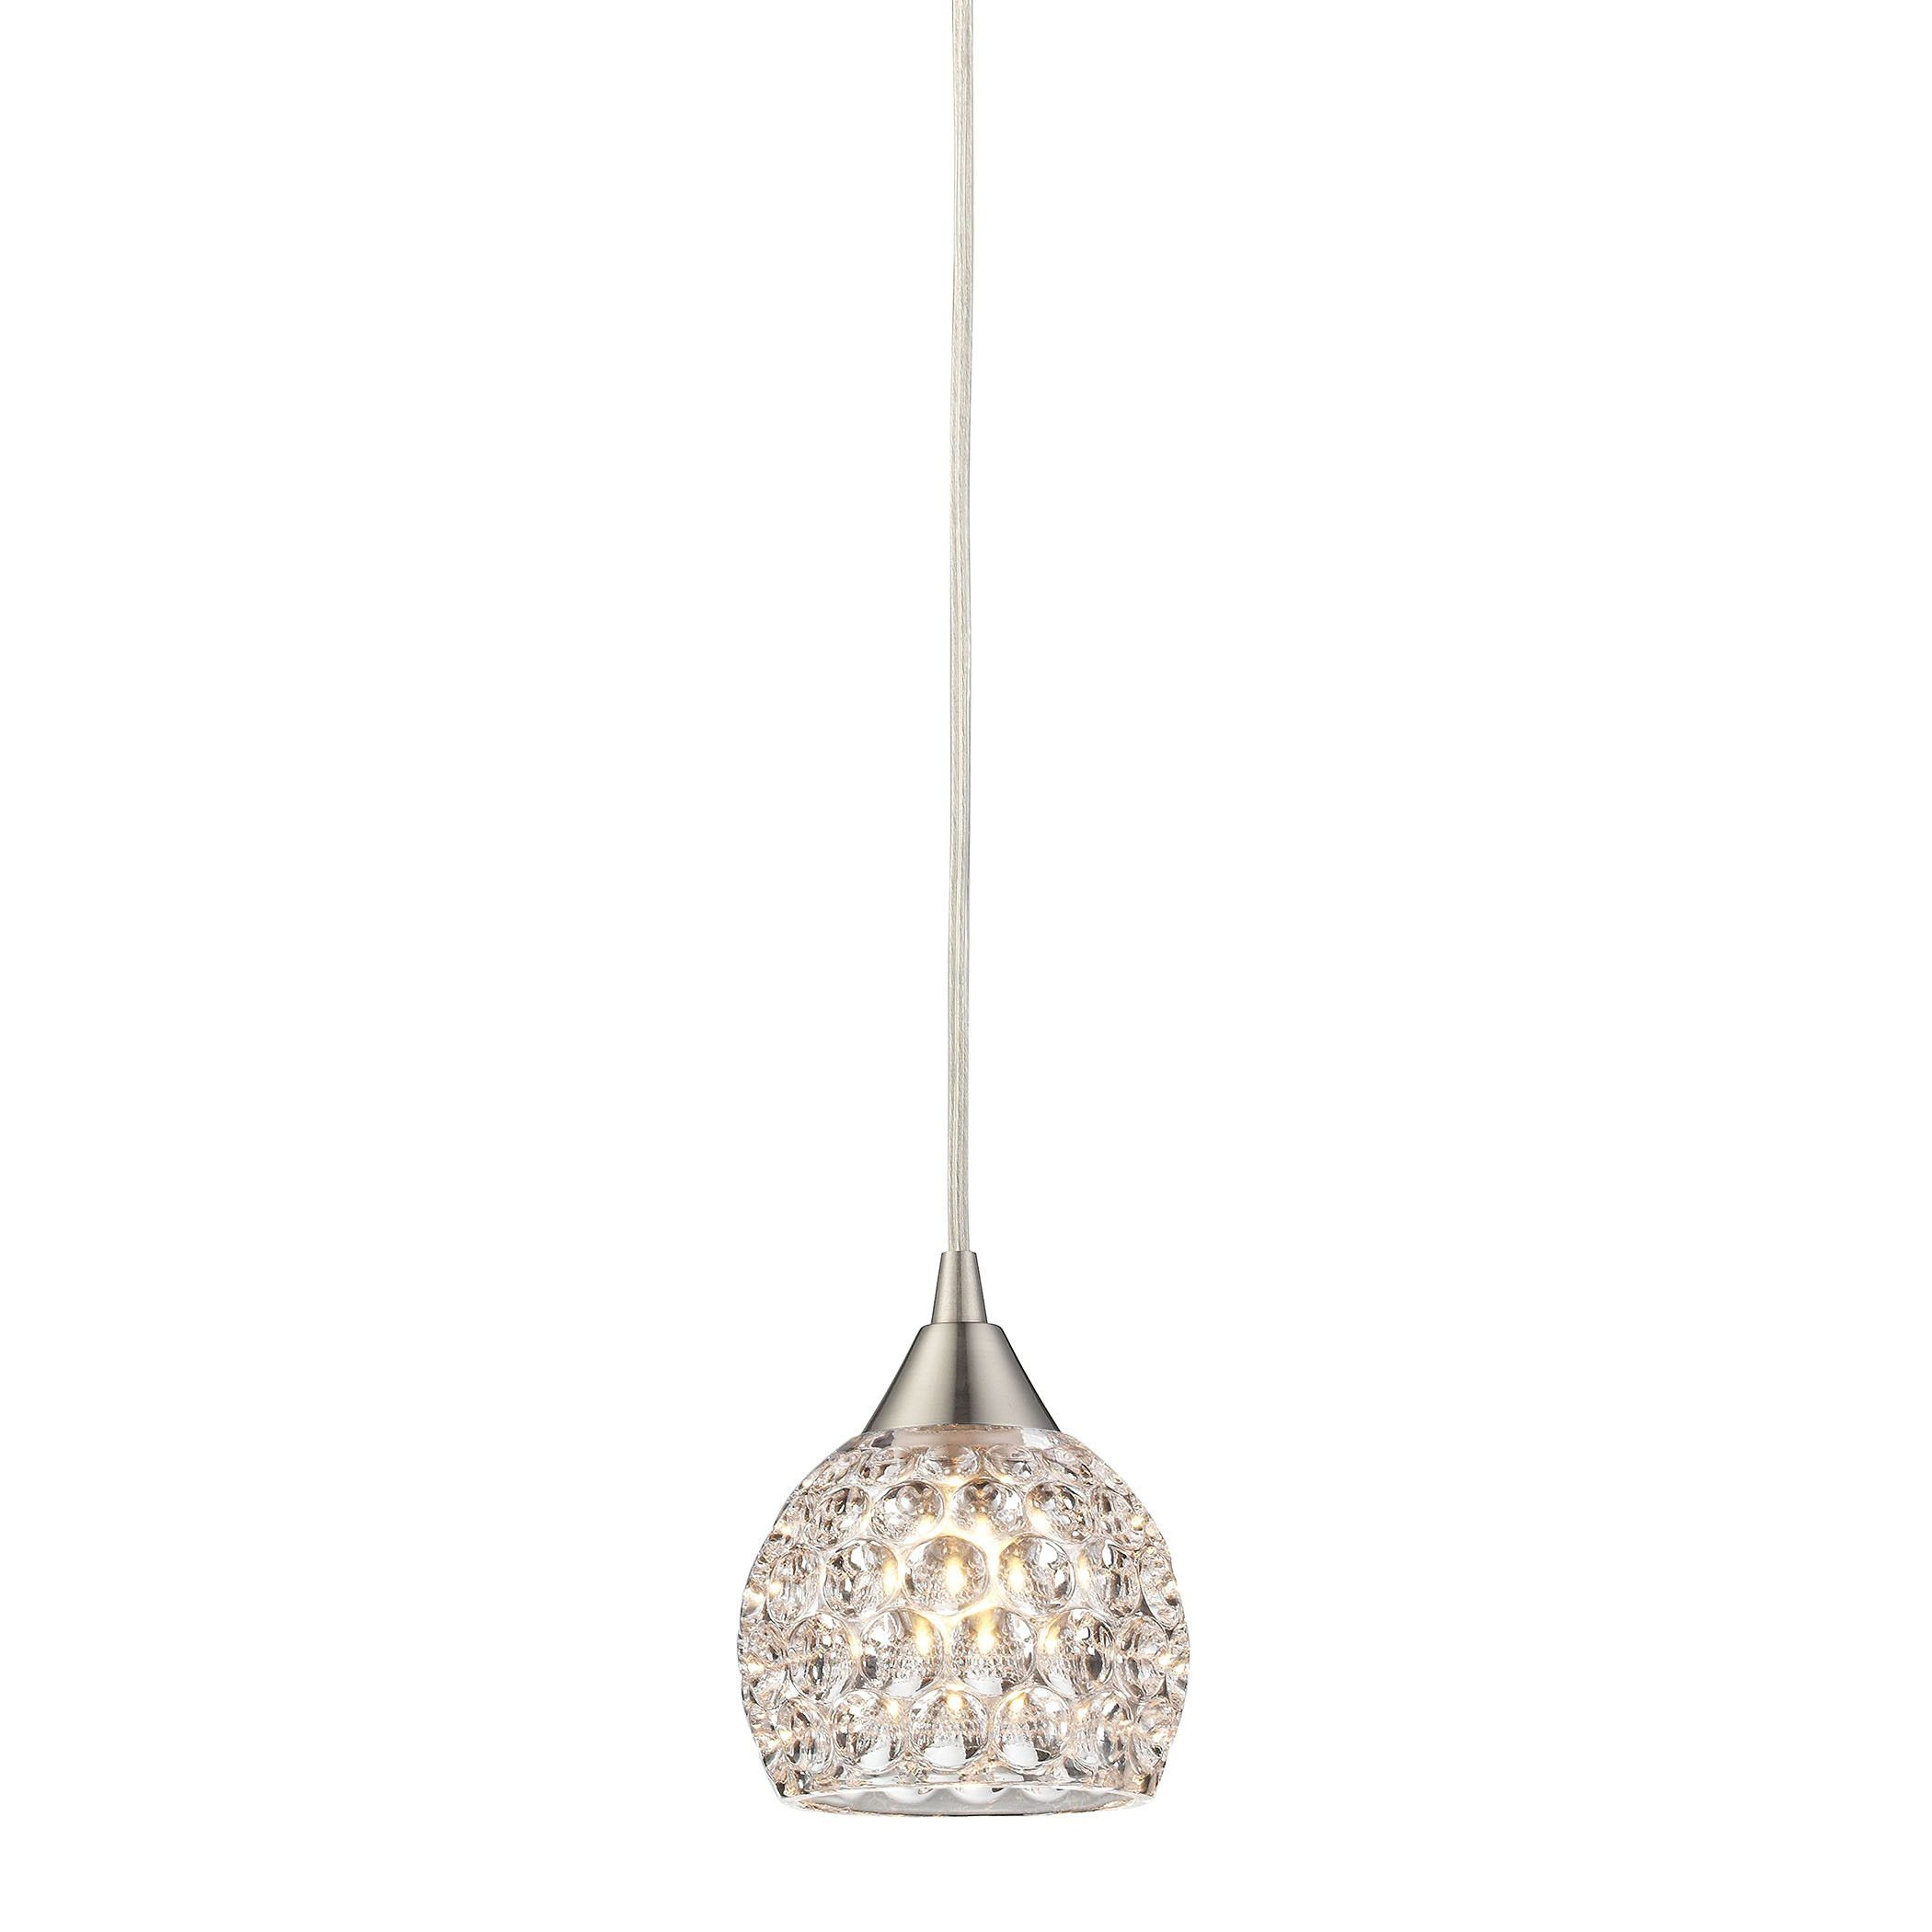 Kersey 1 light pendant in satin nickel satin pendants and lights kersey 1 light pendant in satin nickel arubaitofo Image collections